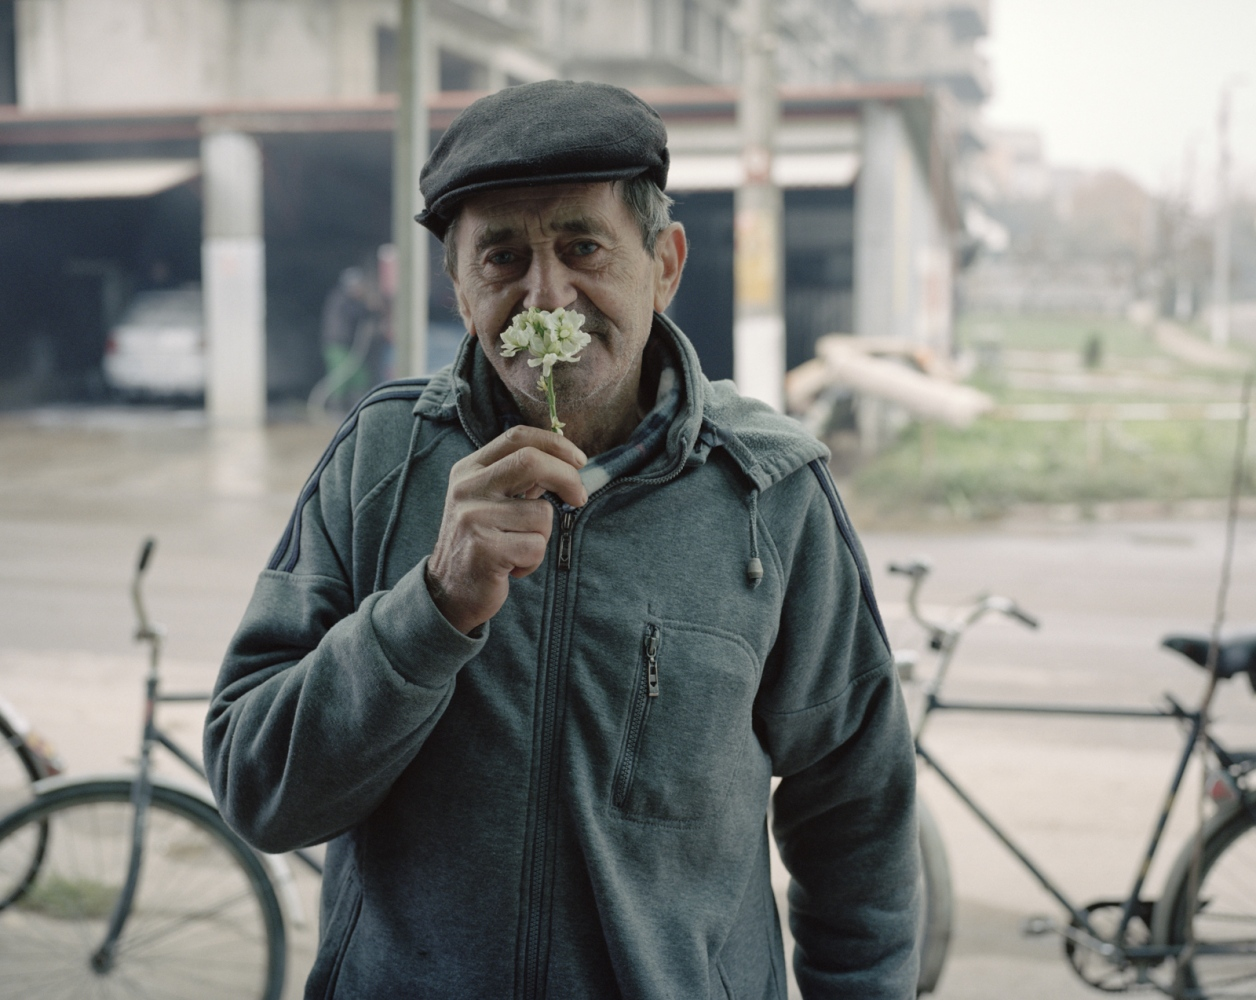 Romania, Zimnicea. An unemployed man smell a local flower. Most of the people of city emigrate in other European countries to find a job.During the1977 Romanian earthquakenot many buildings have been destroyed.Most of the destruction was actually done after the natural disaster by bulldozer, being ordered bycommunist authorities, as a means to create a town from scratch on a new design.Ten years later, the newly built infrastructure was falling apart due mainly to poor workmanship